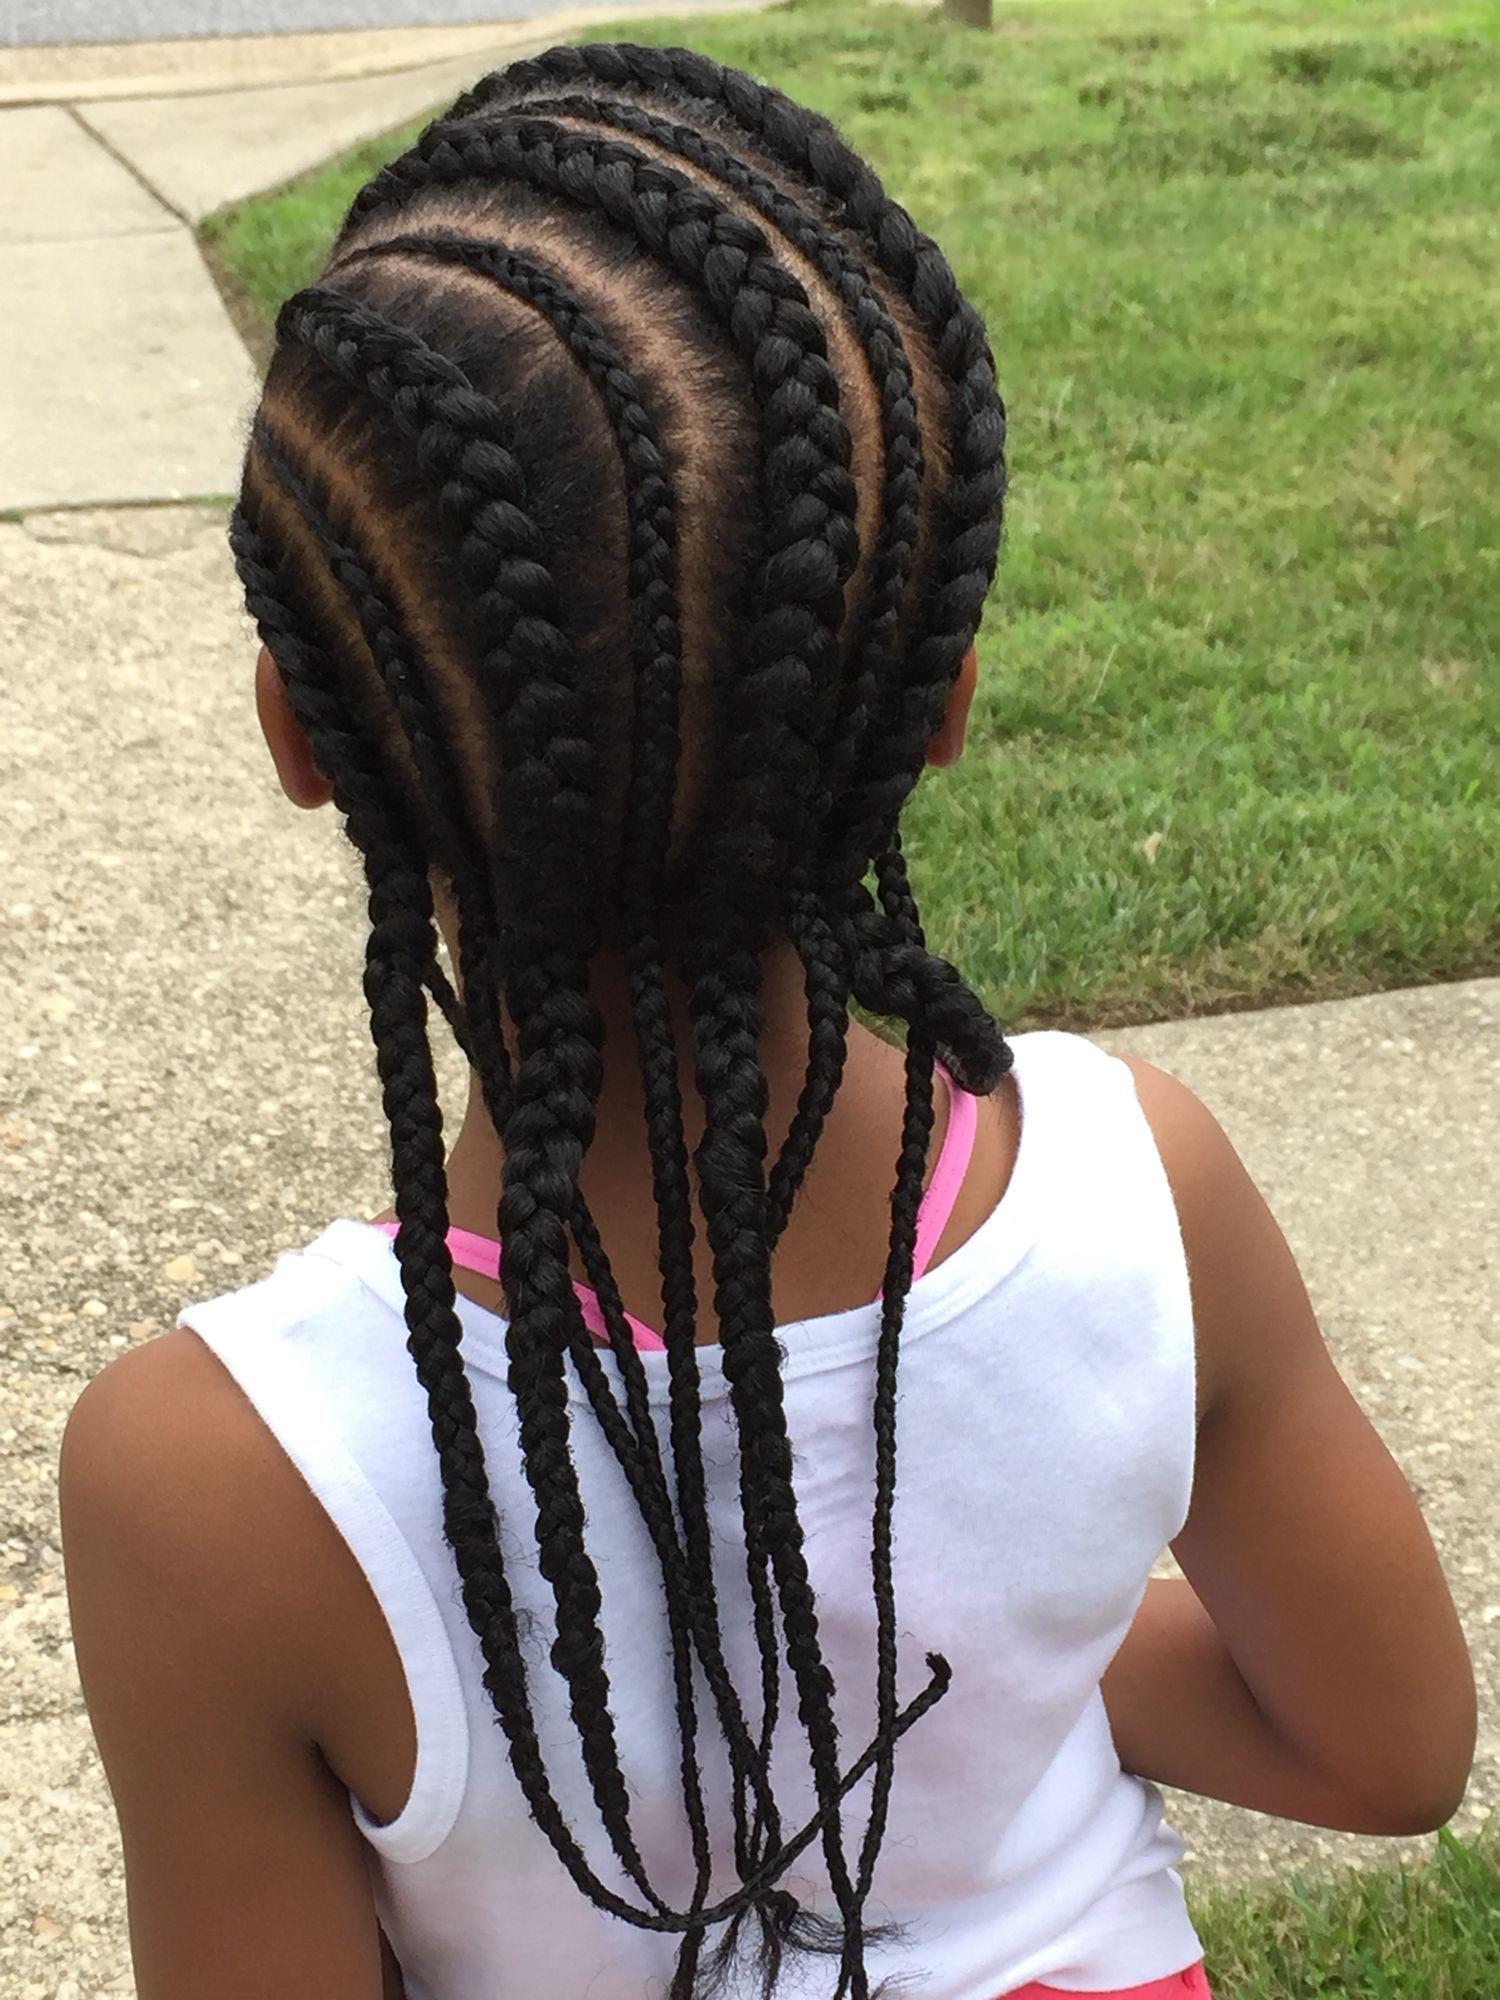 Straight Back Cornrows | Hair styles, Braids hairstyles pictures, Natural hair styles